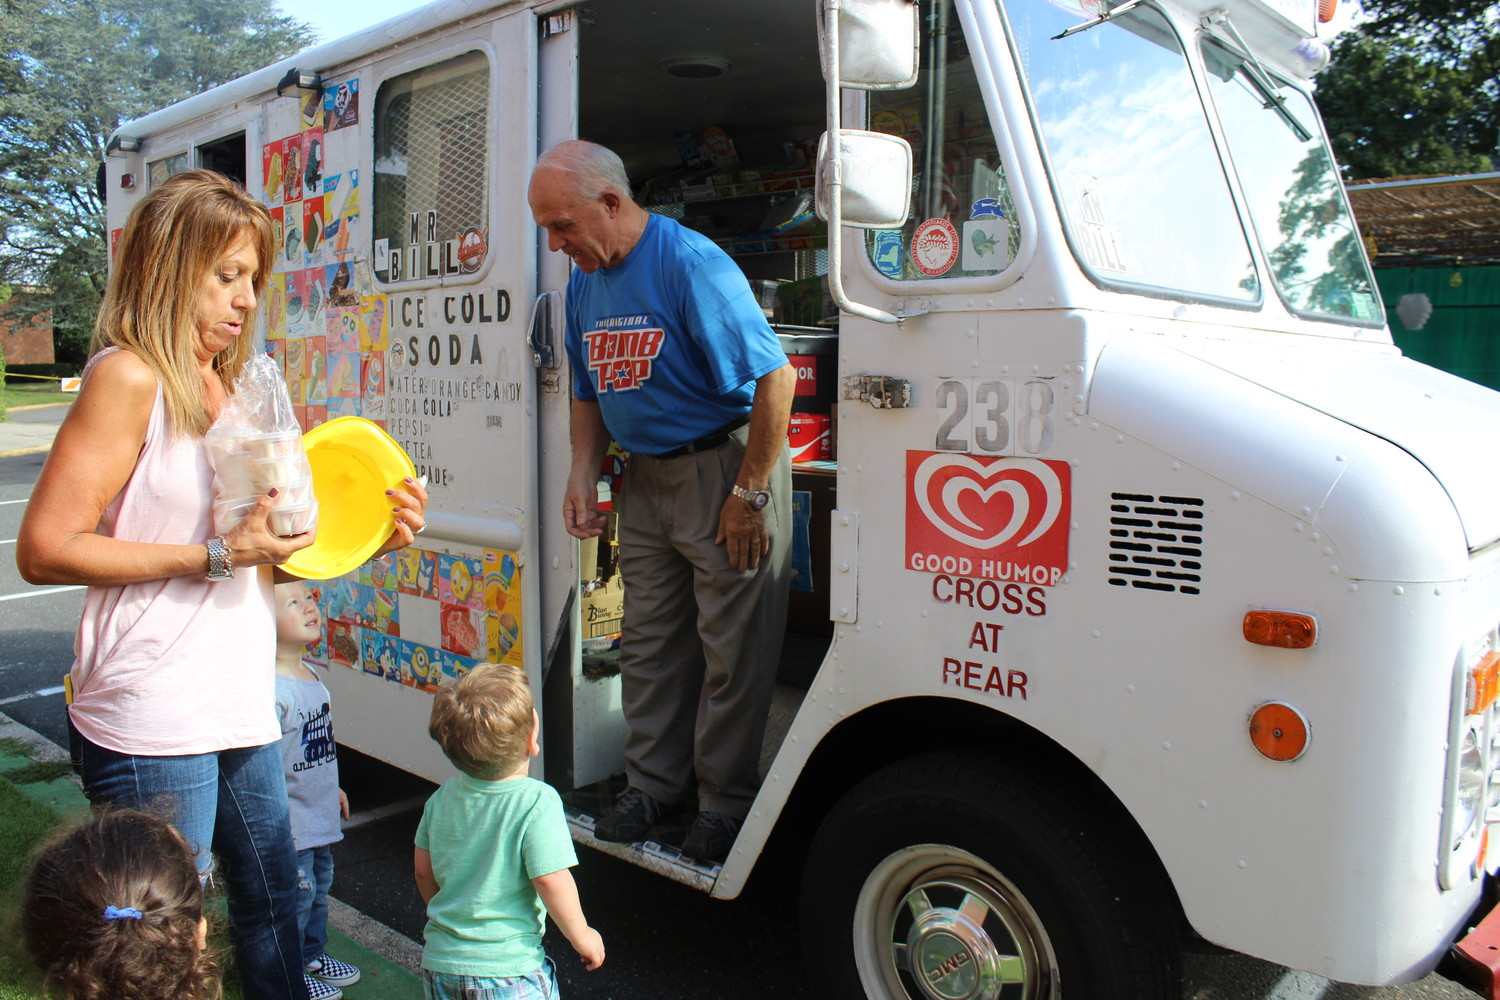 The classes ended their tour of 13 trucks with a visit to Mr. Bill's ice cream truck.